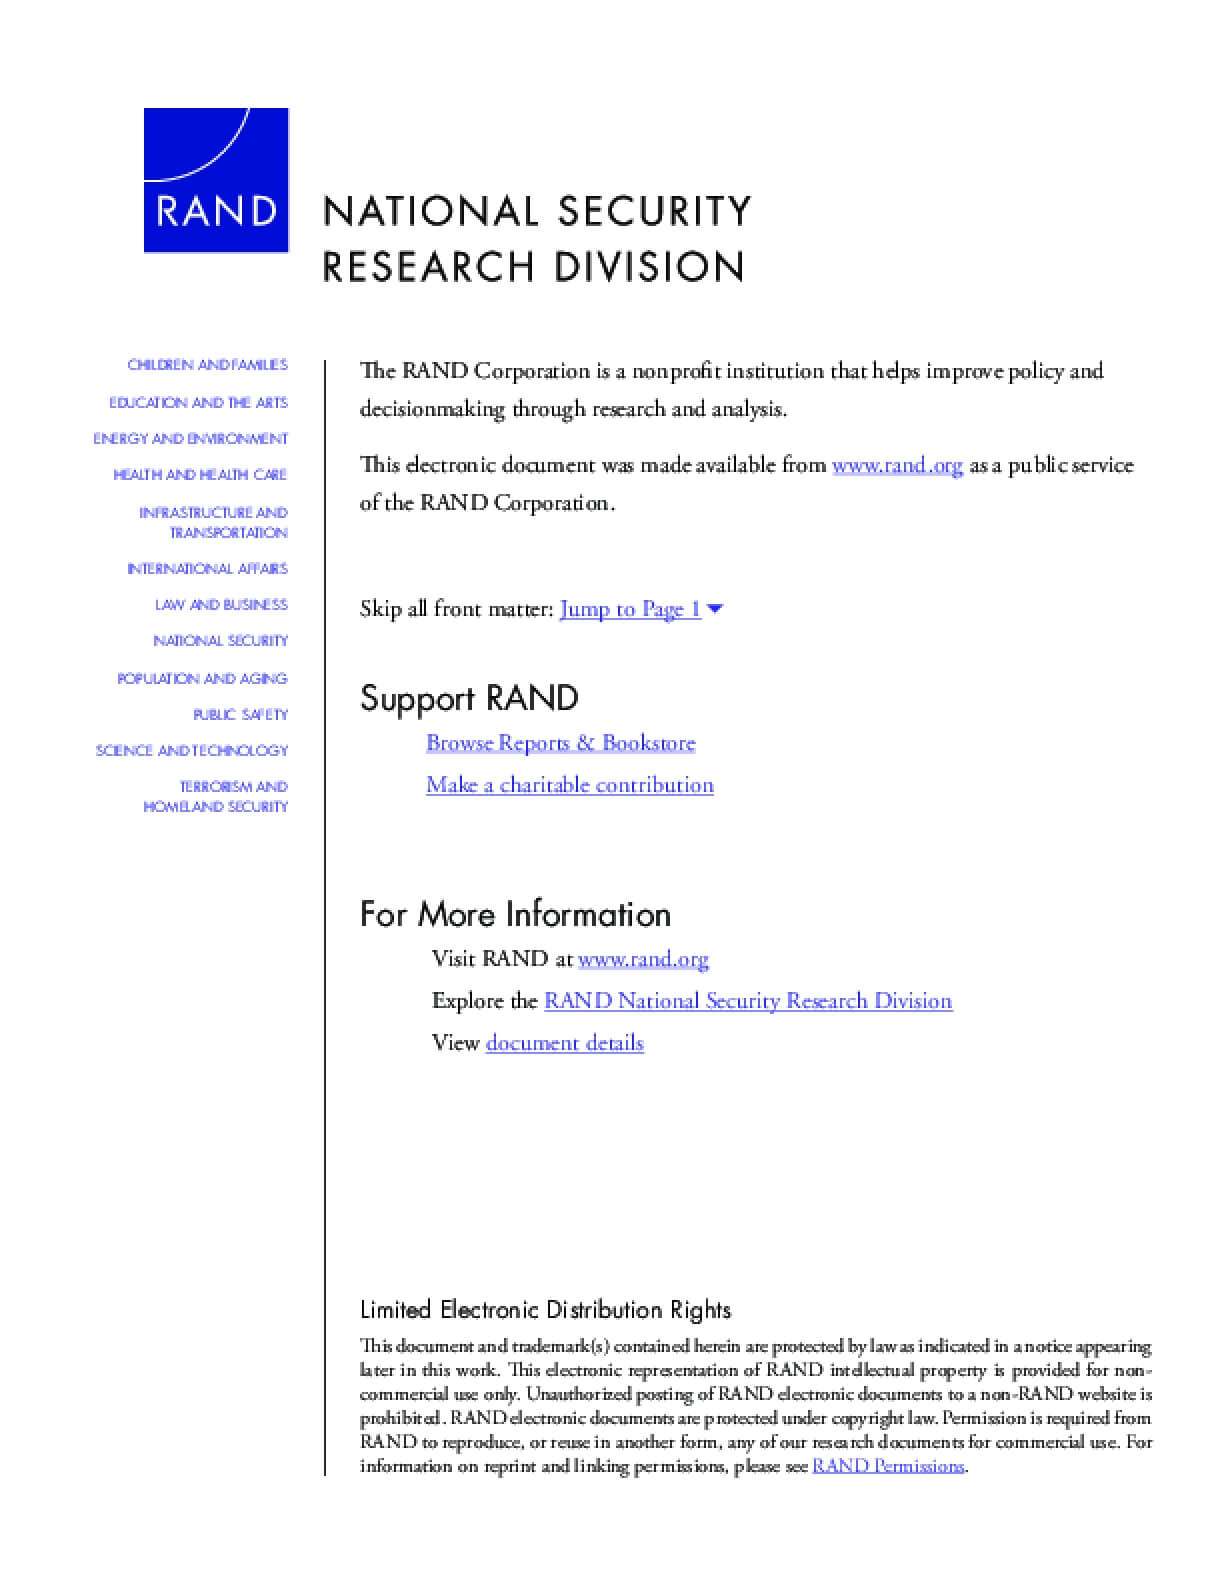 Threats Without Threateners? Exploring Intersections of Threats to the Global Commons and National Security